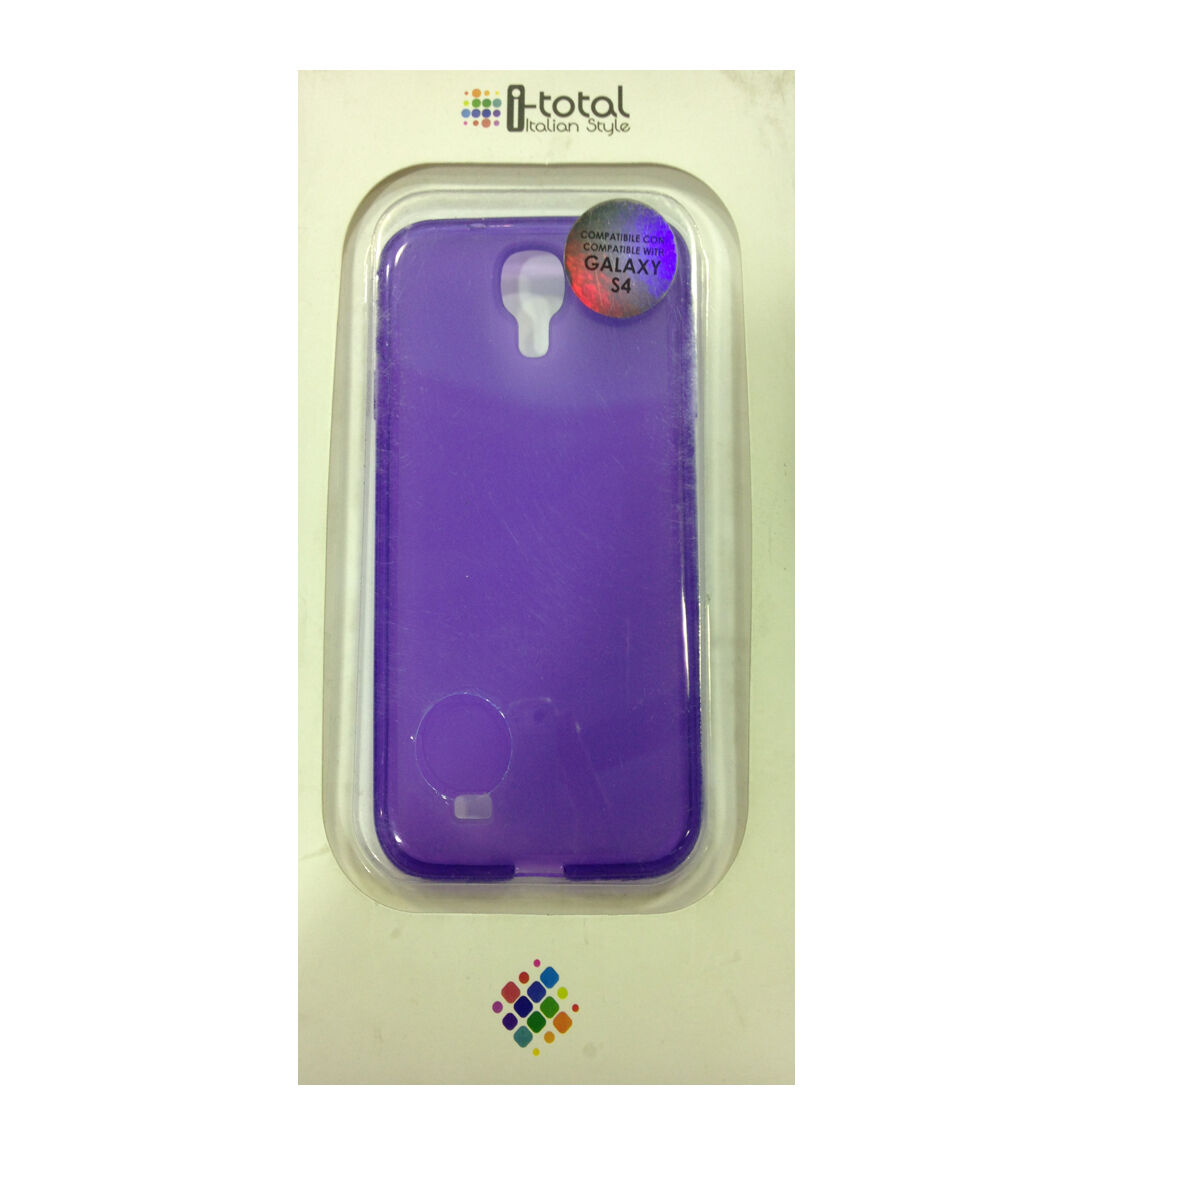 COVER mascherina SAMSUNG GALAXY S4 viola in silicone morbida I-TOTAL